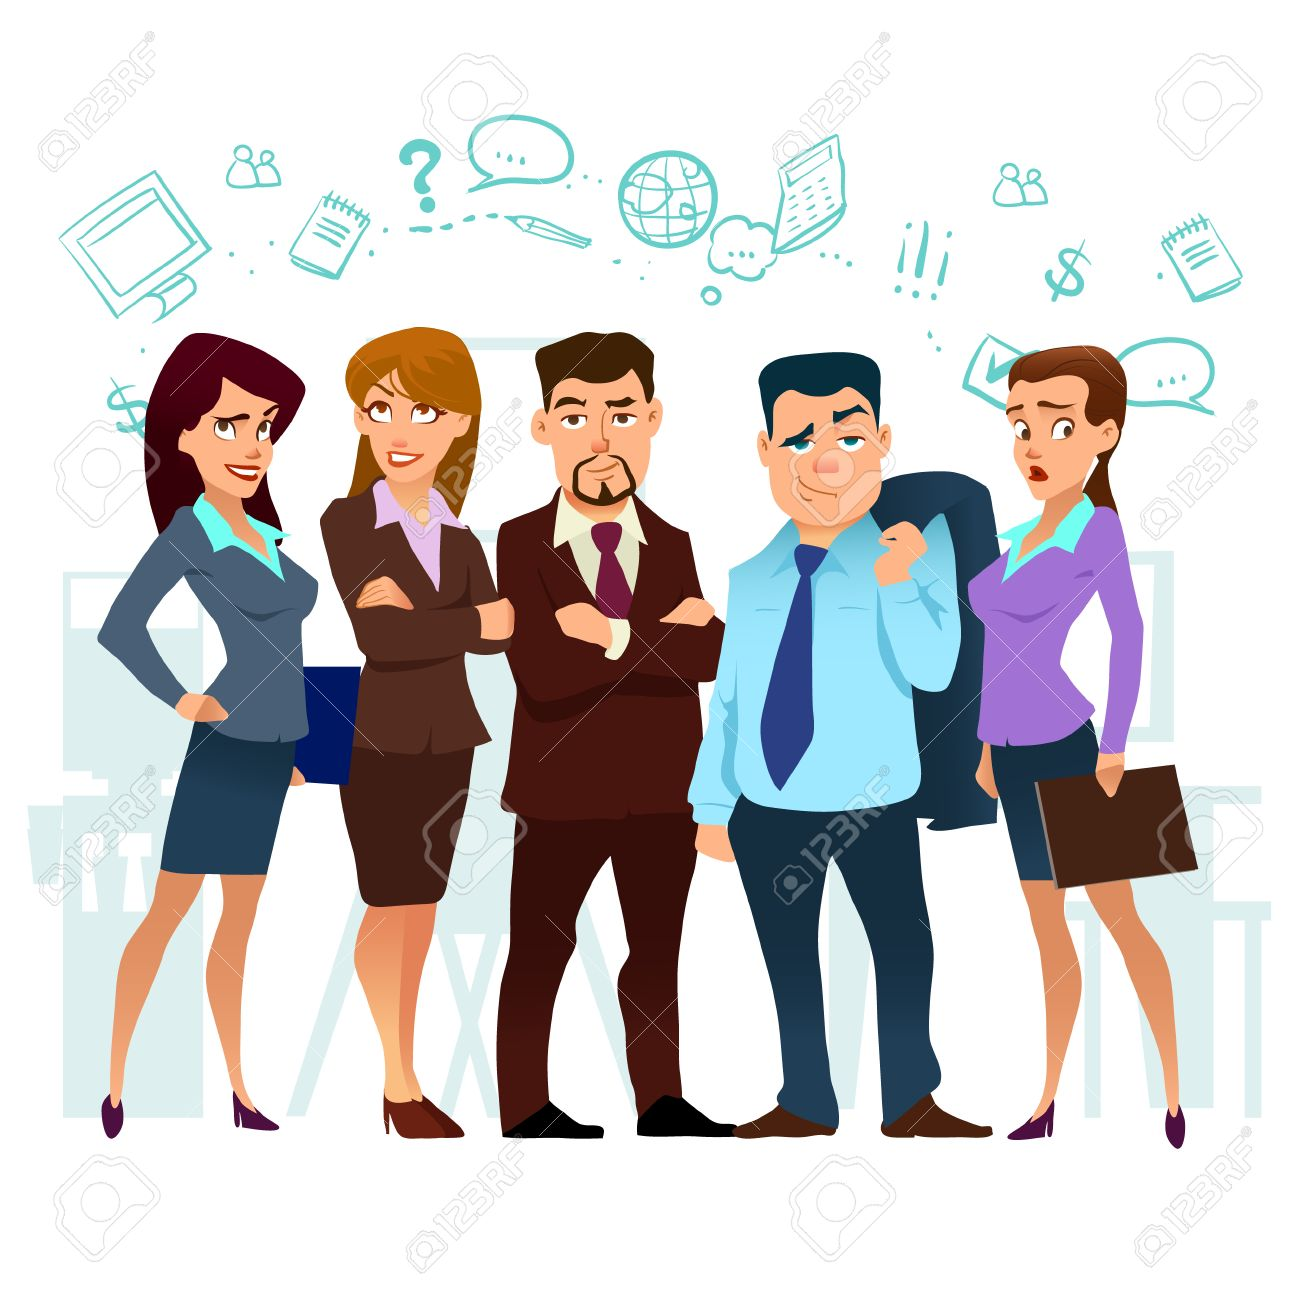 business cartoon characters coworking teamwork in business